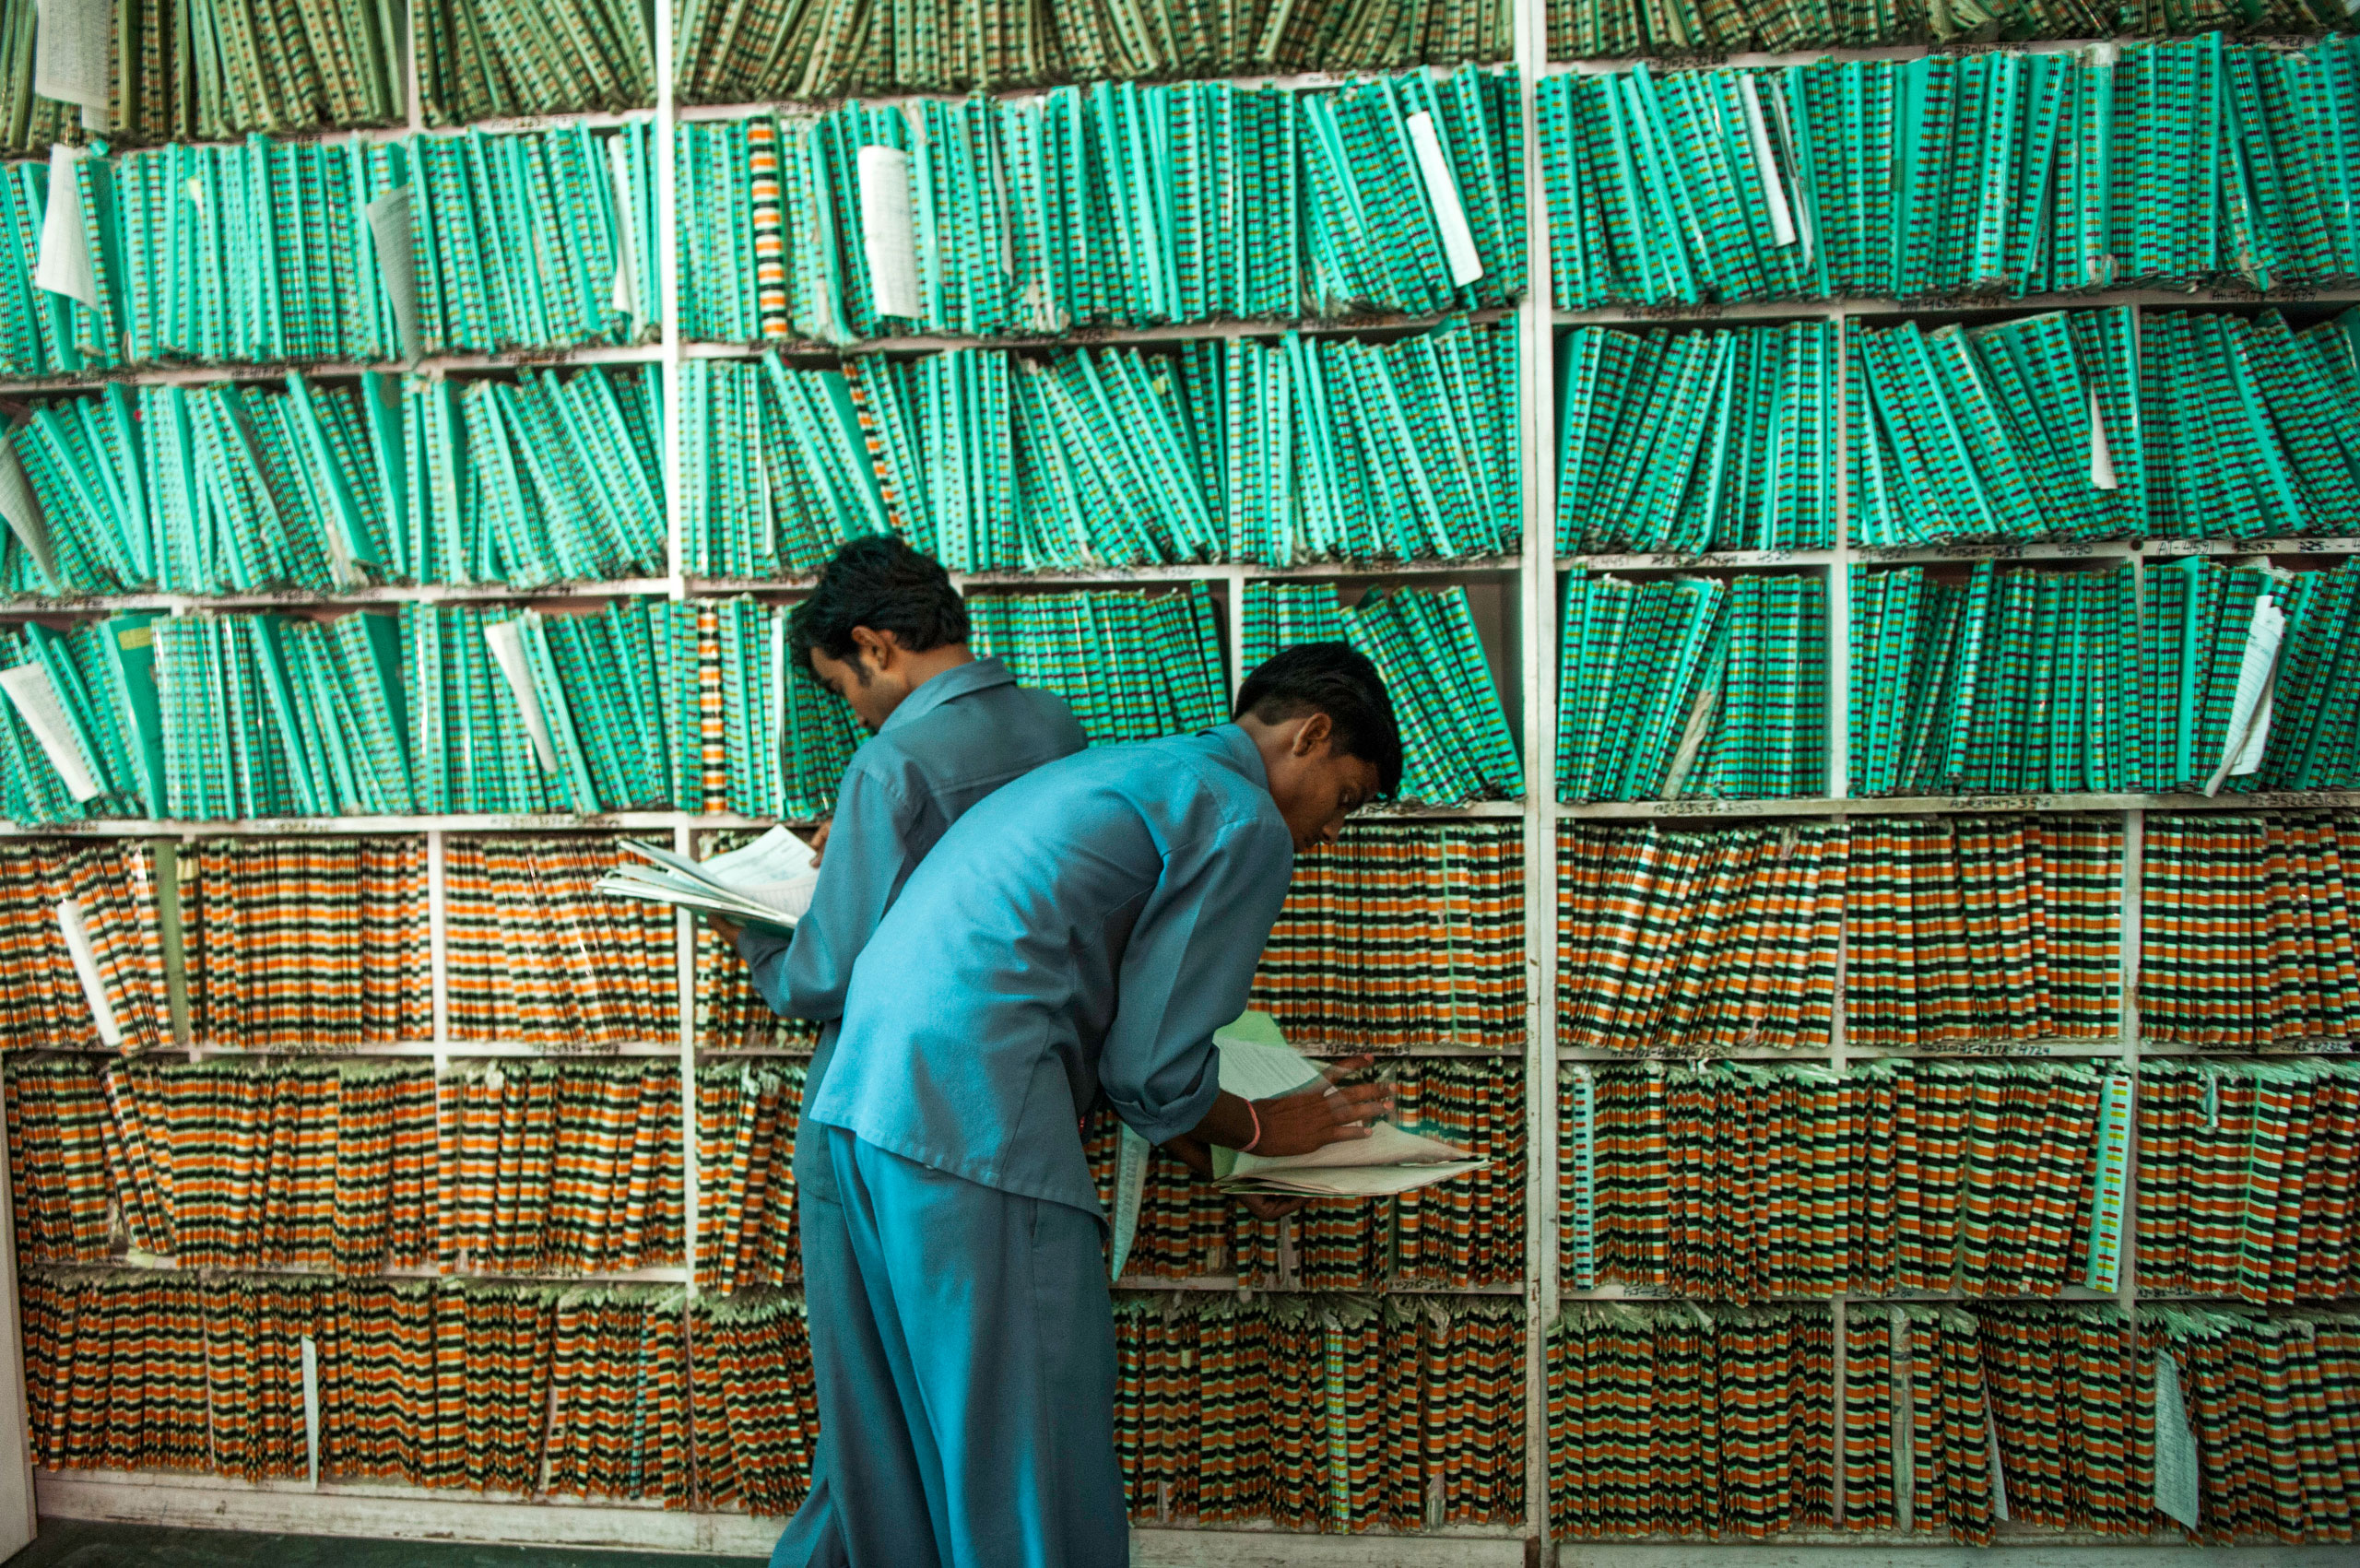 Medical assistants review files at the Cancer Hospital. Jaipur, Rajasthan, 2009